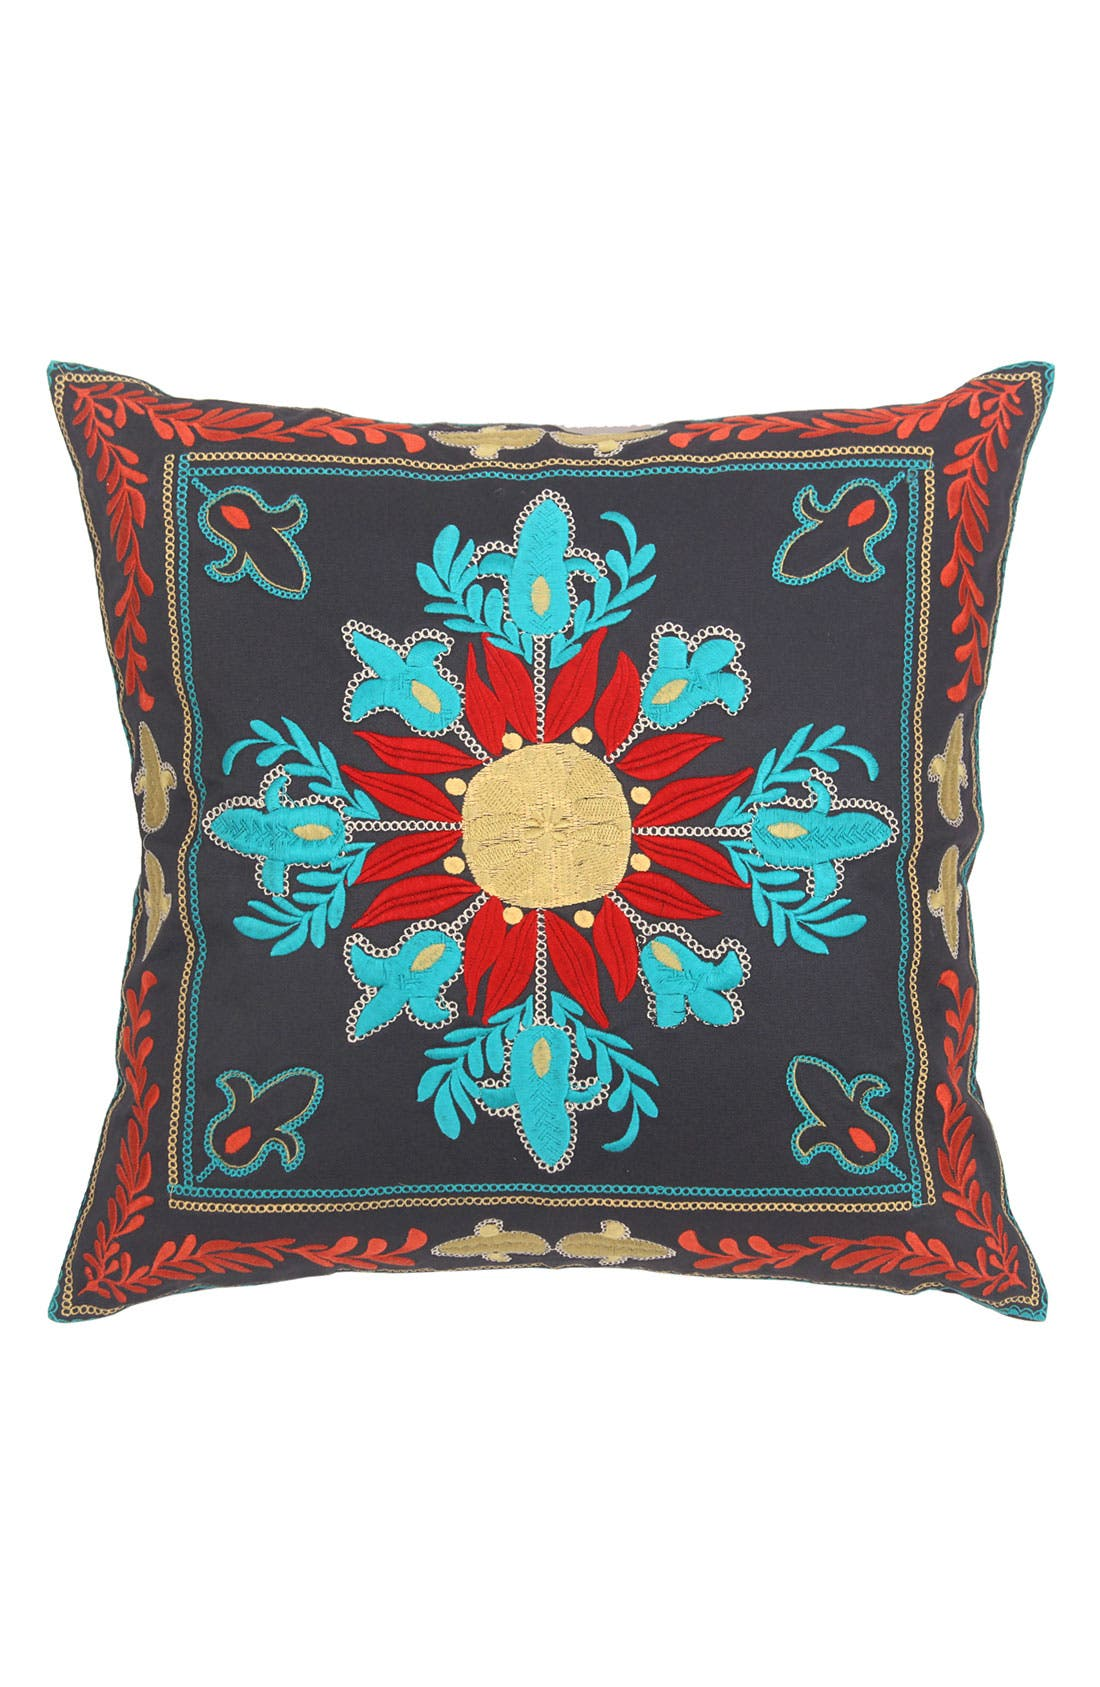 Main Image - Blissliving Home 'Samsara' Pillow